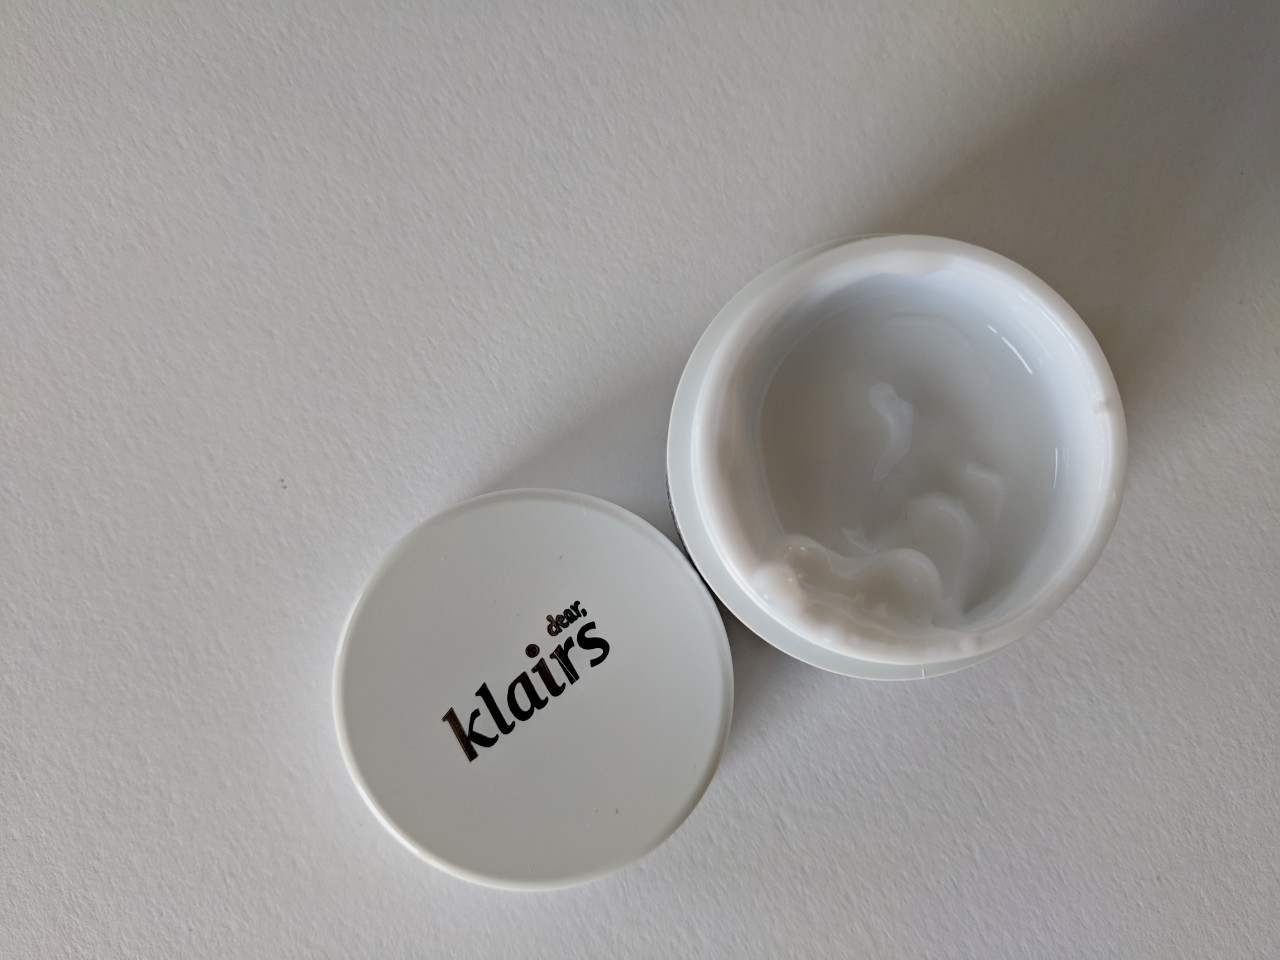 Klairs Freshly Juiced Vitamin E Mask pot and lid